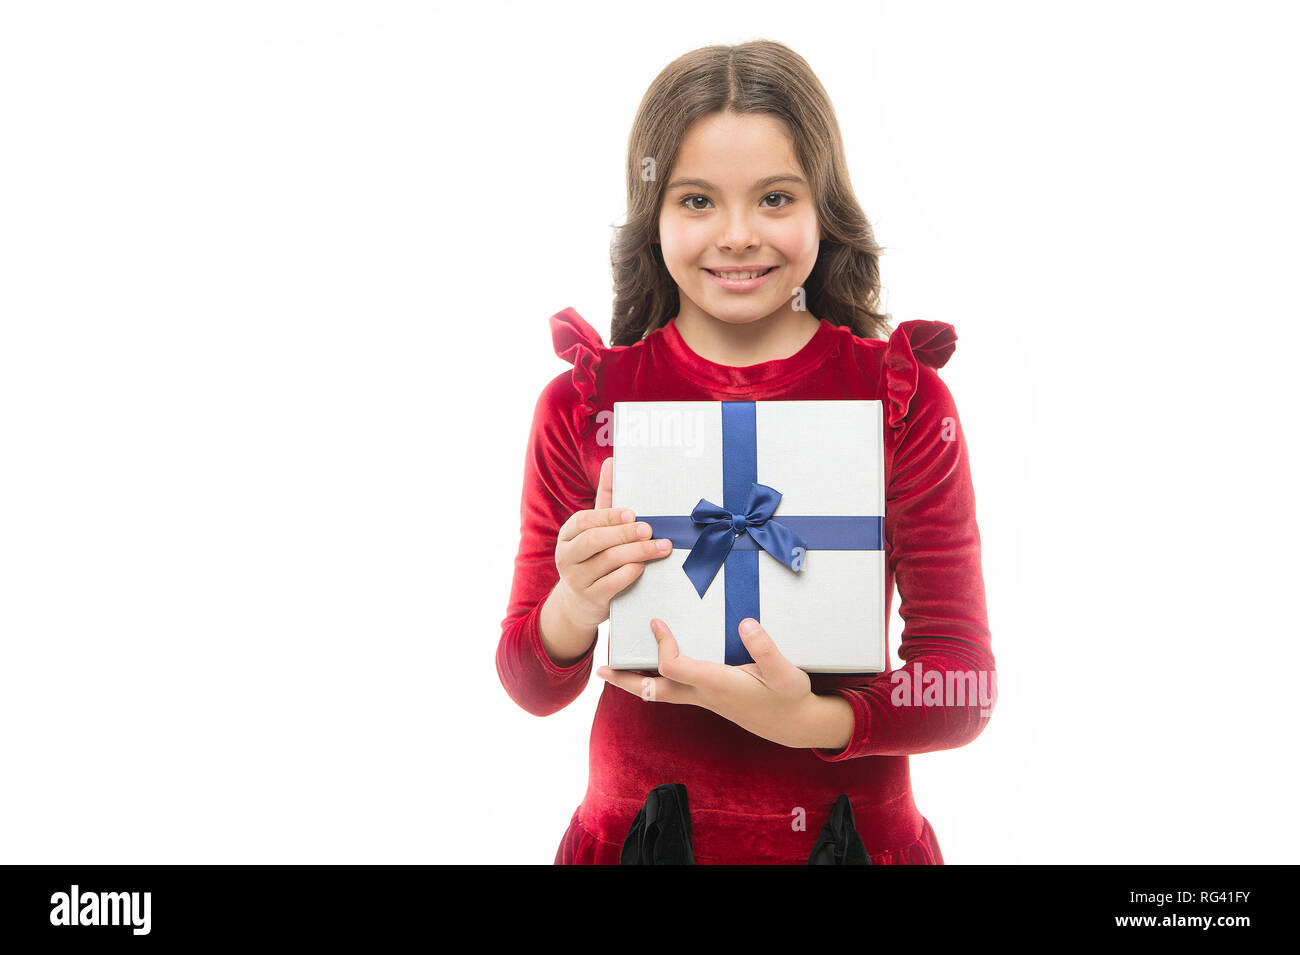 Happy Birthday Gift Big Sale In Shopping Mall Boxing Day Small Girl After